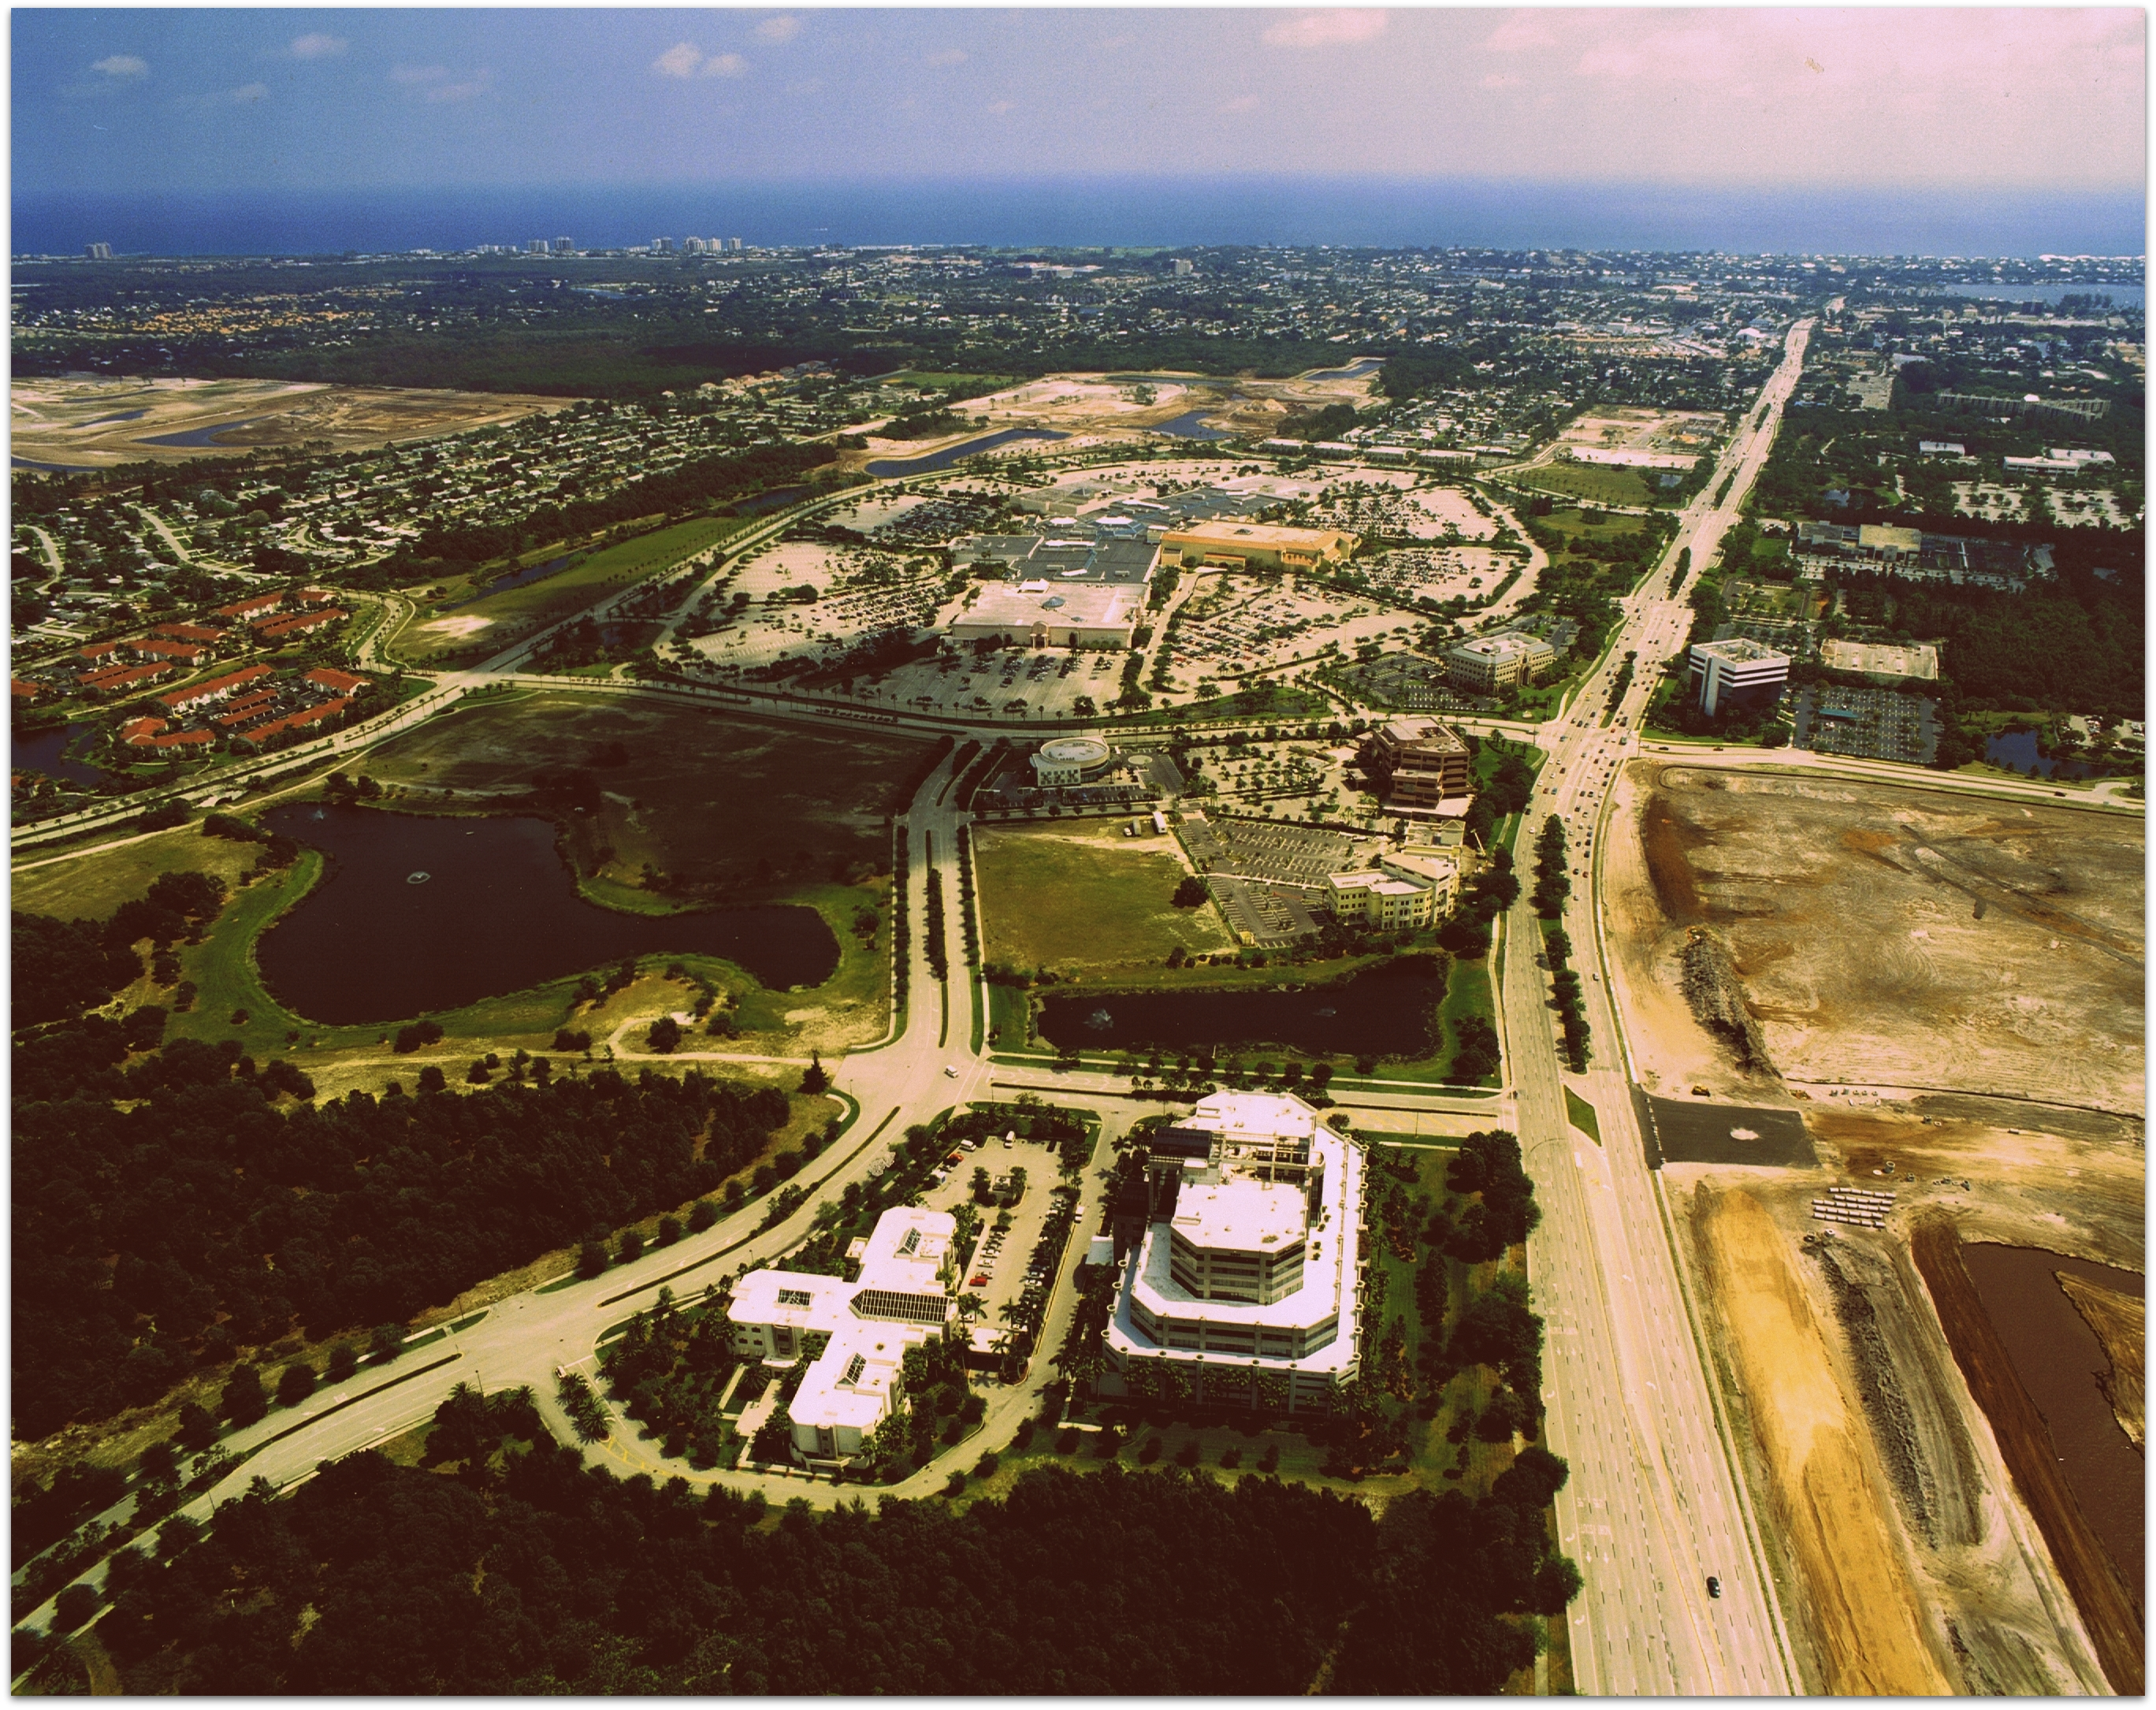 The Gardens Mall - Aerial View ·